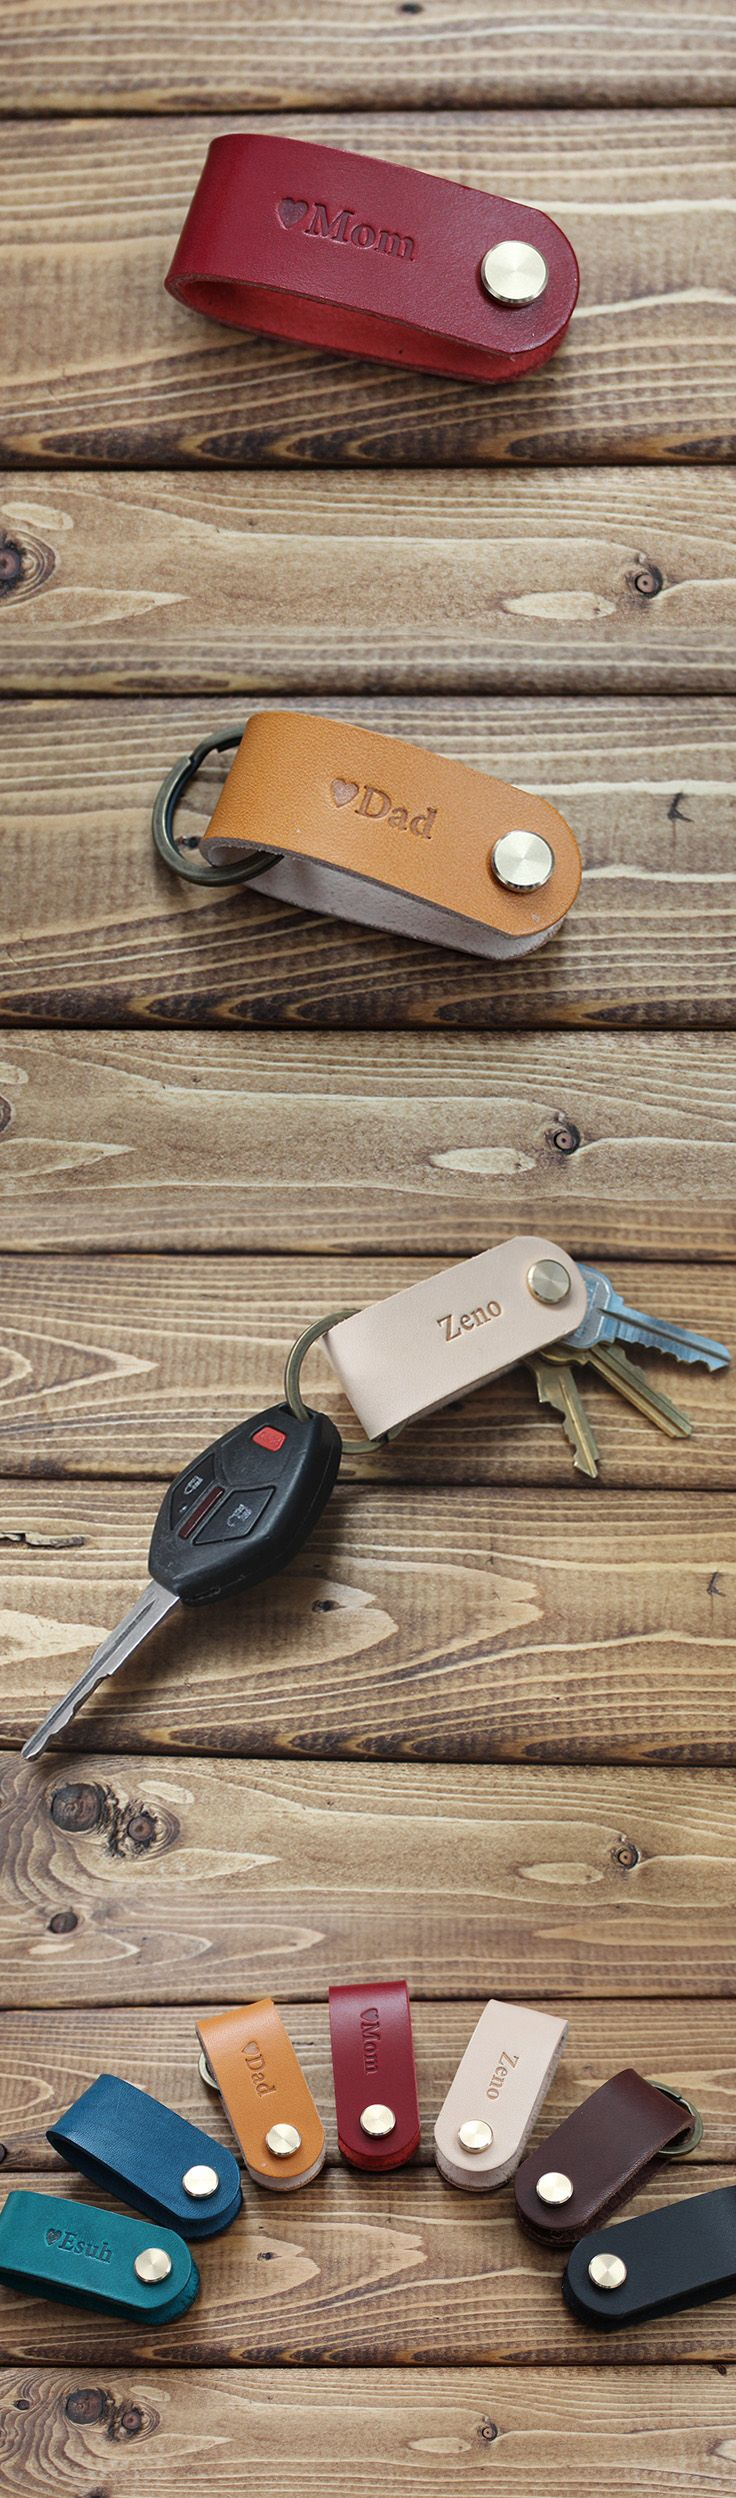 Personalized Leather KEY HOLDER, Key folder, key chain. Great gift idea for mother's day, Father's day, wedding, Anniversary, birthday, Christmas, new car, new house.